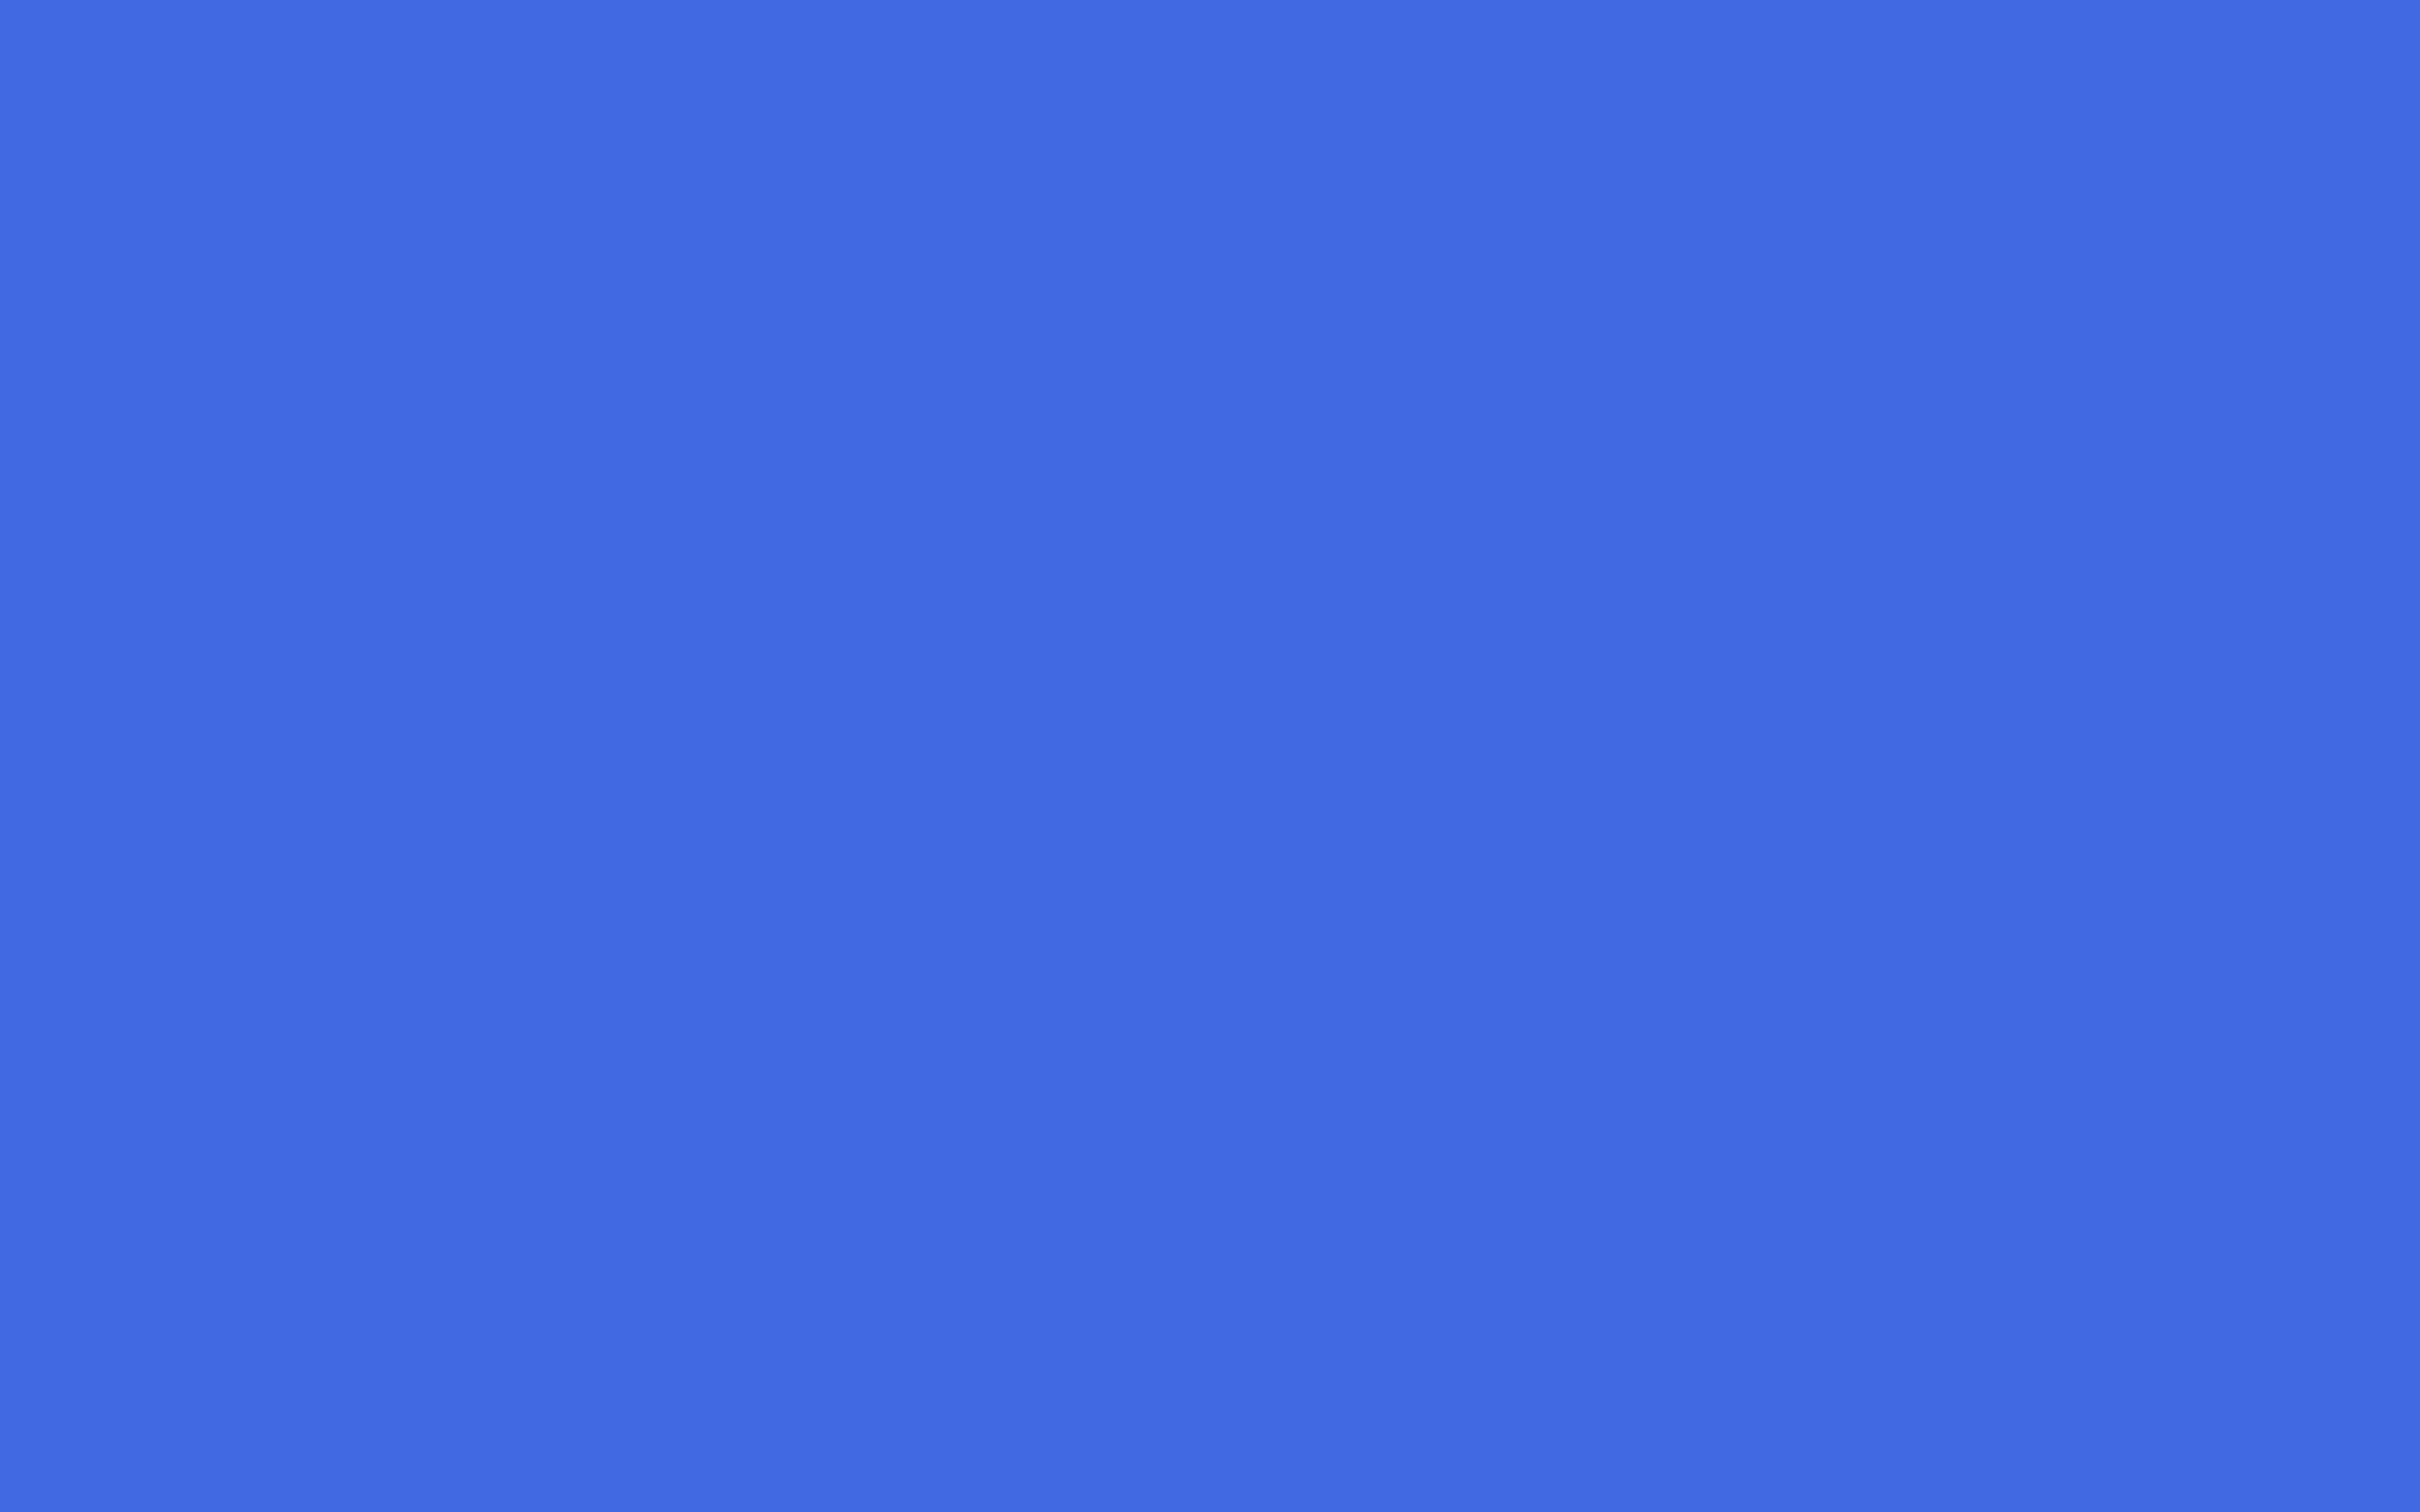 2560x1600 Royal Blue Web Solid Color Background